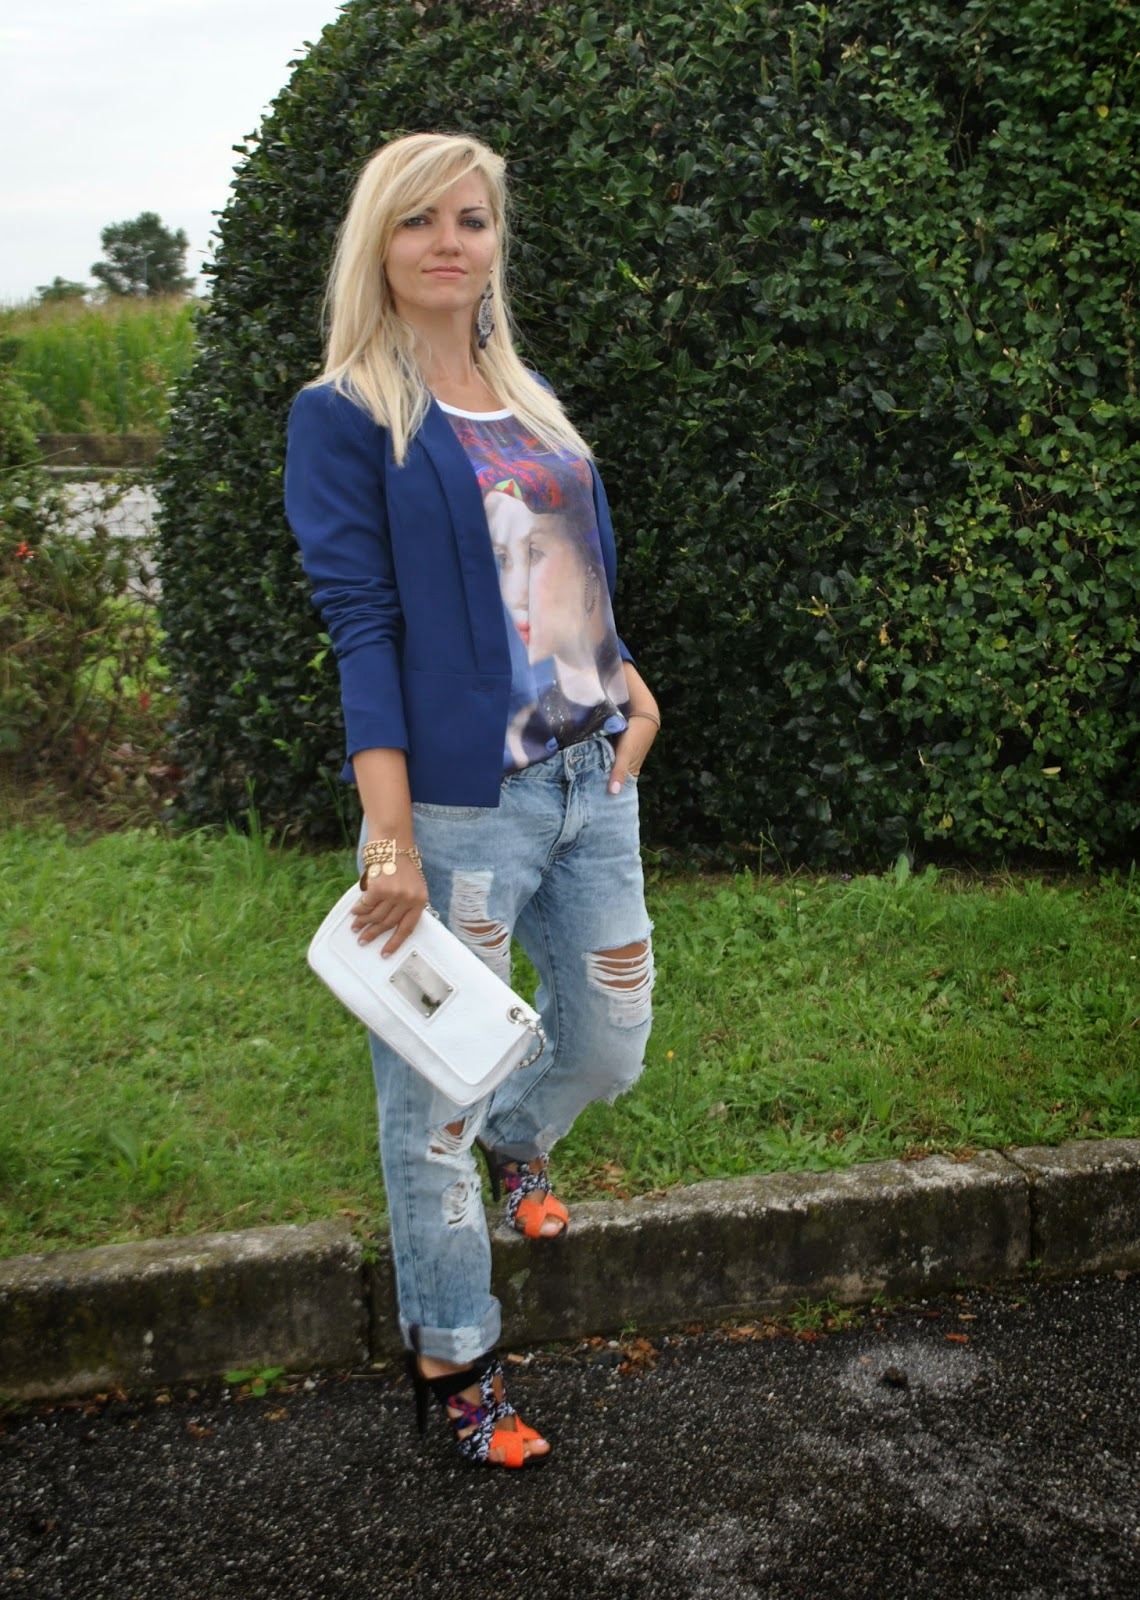 outfit boyfriend jeans destroyed blazer e tacchi outfit jeans e tacchi outfit blazer outfit blazer blu outfit canotta stampata outfit bracciale monete d'oro outfit estivi outfit estate 2014 outfit agosto 2014 outfit di mariafelicia magno fashion blogger di colorblock by felym abbinamenti boyfriend jeans come abbinare i boyfriend jeans how to wear boyfriend jeans how to wear blazer majique london fashion blogger bionde fashion blogger italiane fashion blogger milano colorblock by felym sandali pimkie fblogger lookbook streetstyle